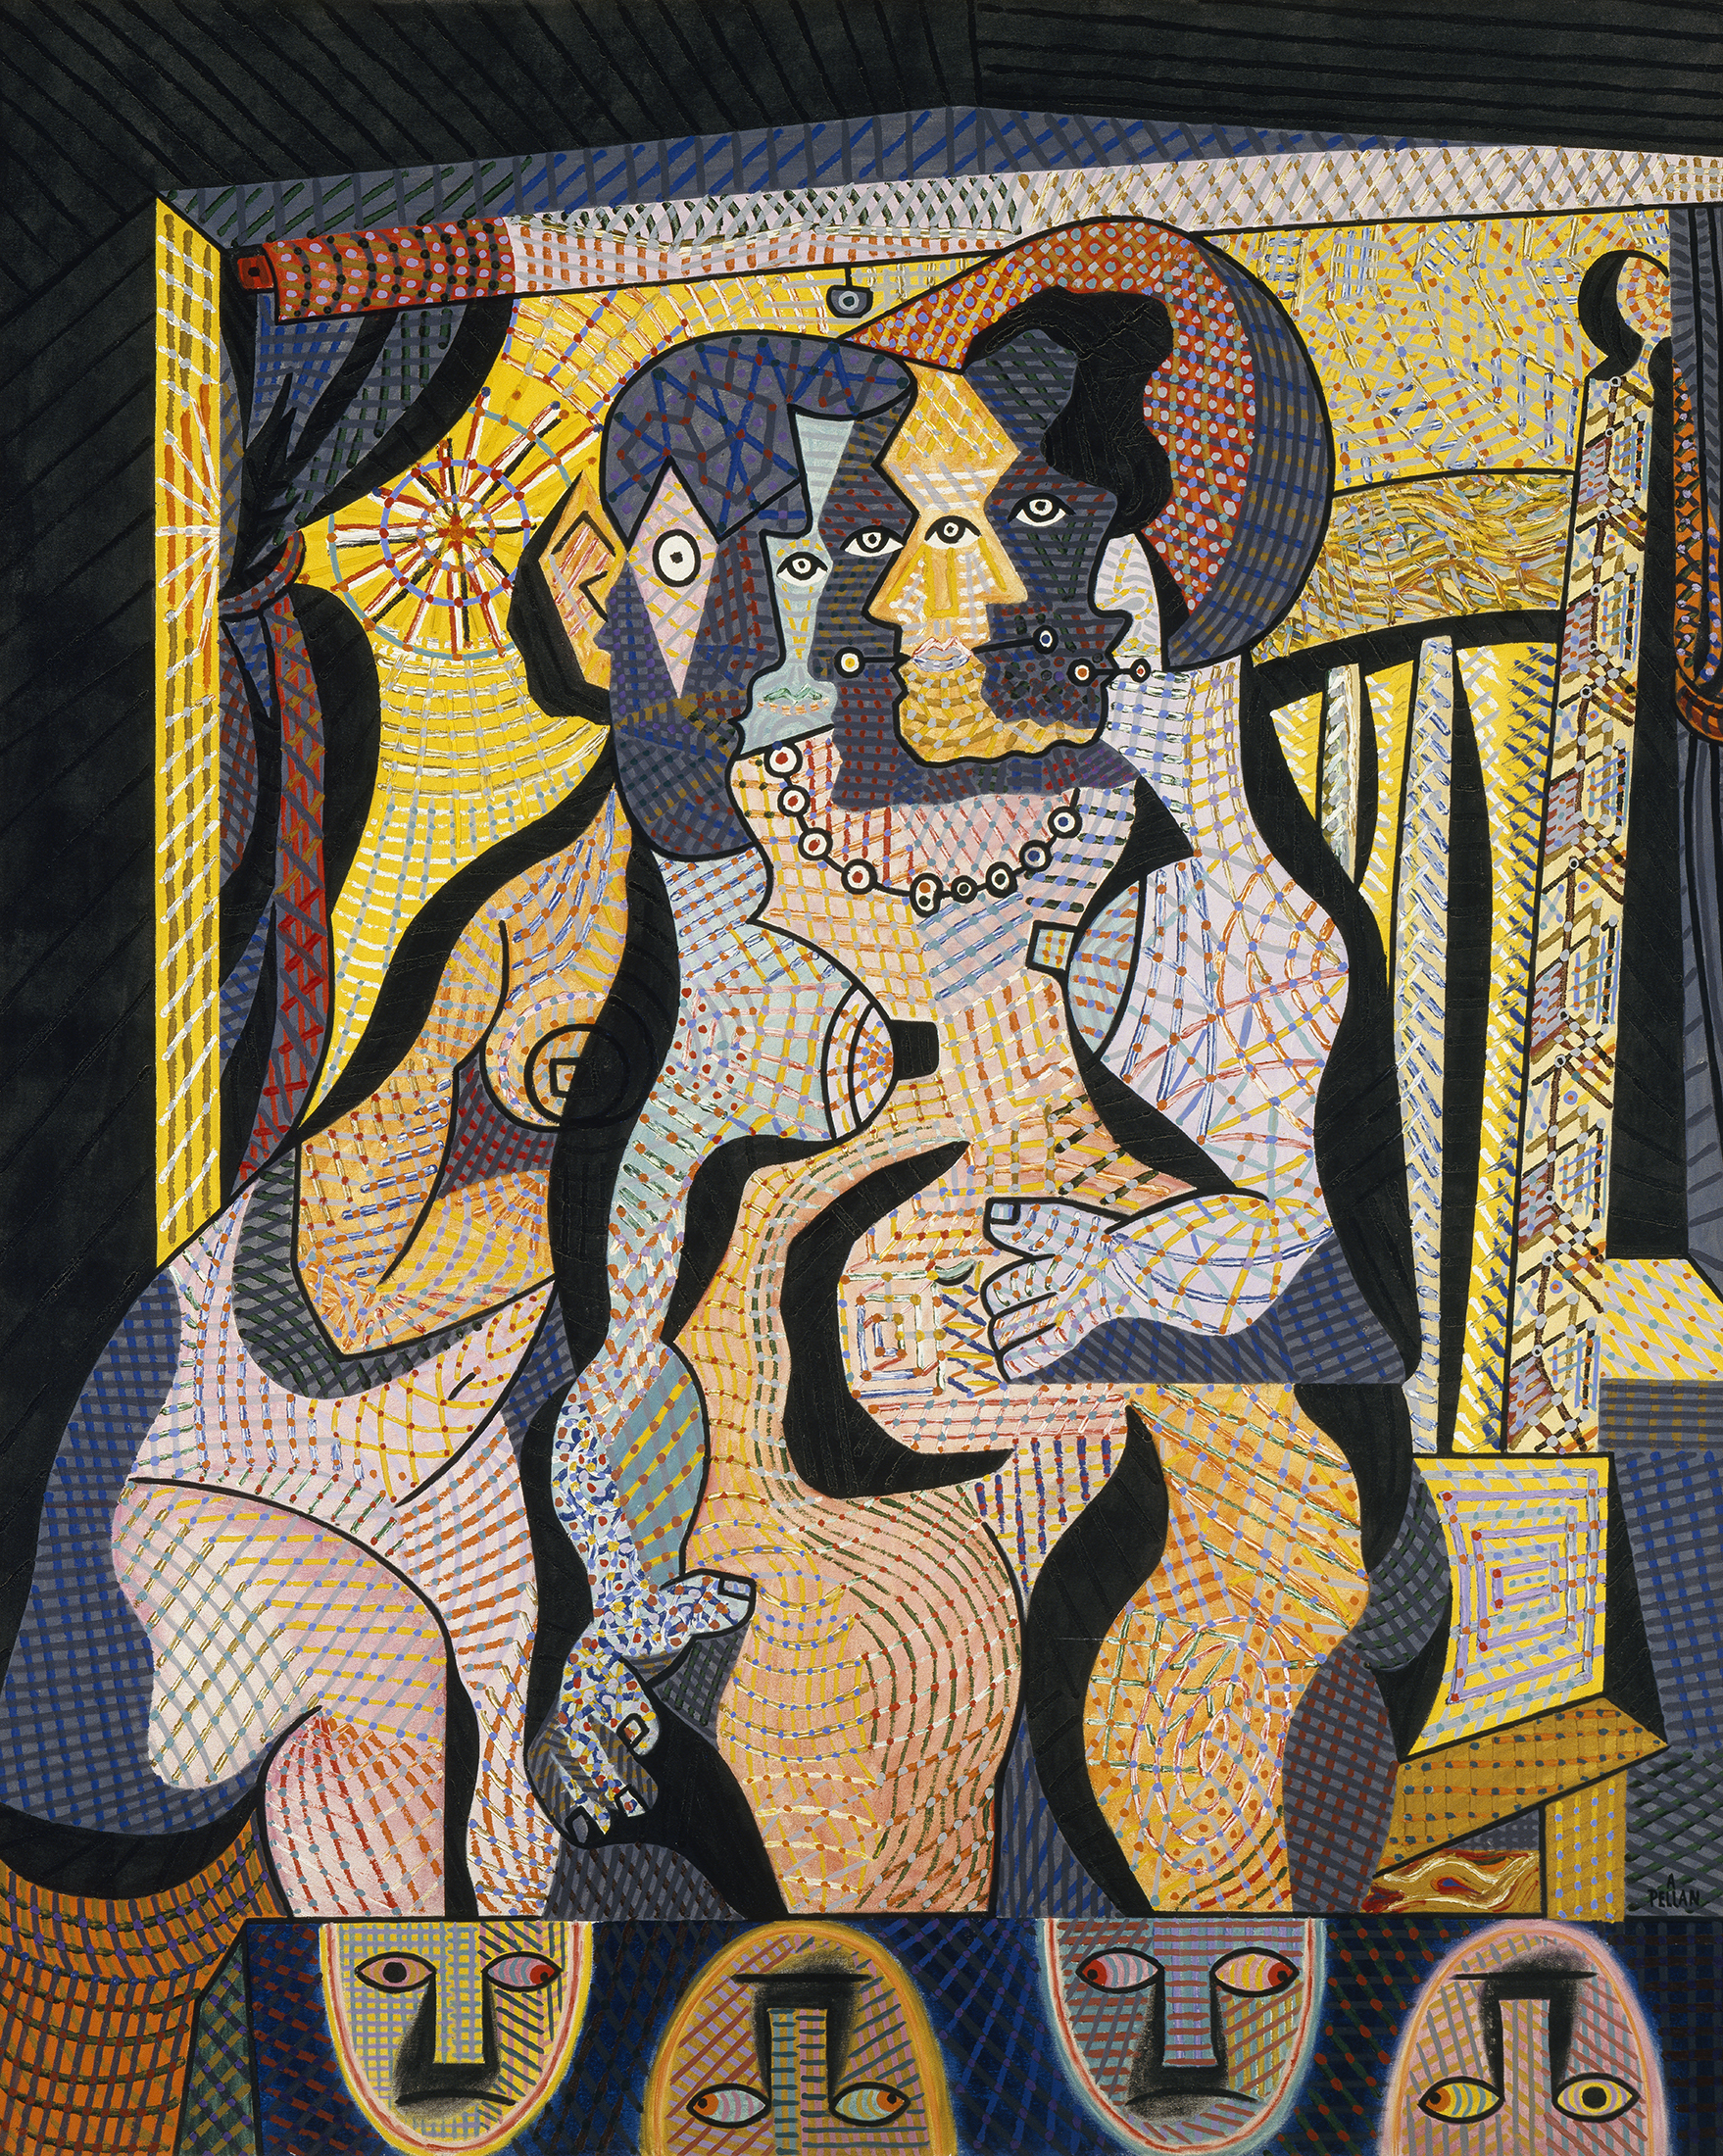 This painting shows many women outlines in conversation seated on chairs. Their tangled bodies are made up of various facets defined by small lines of yellow, pink, red, orange, blue, green, purple and black.